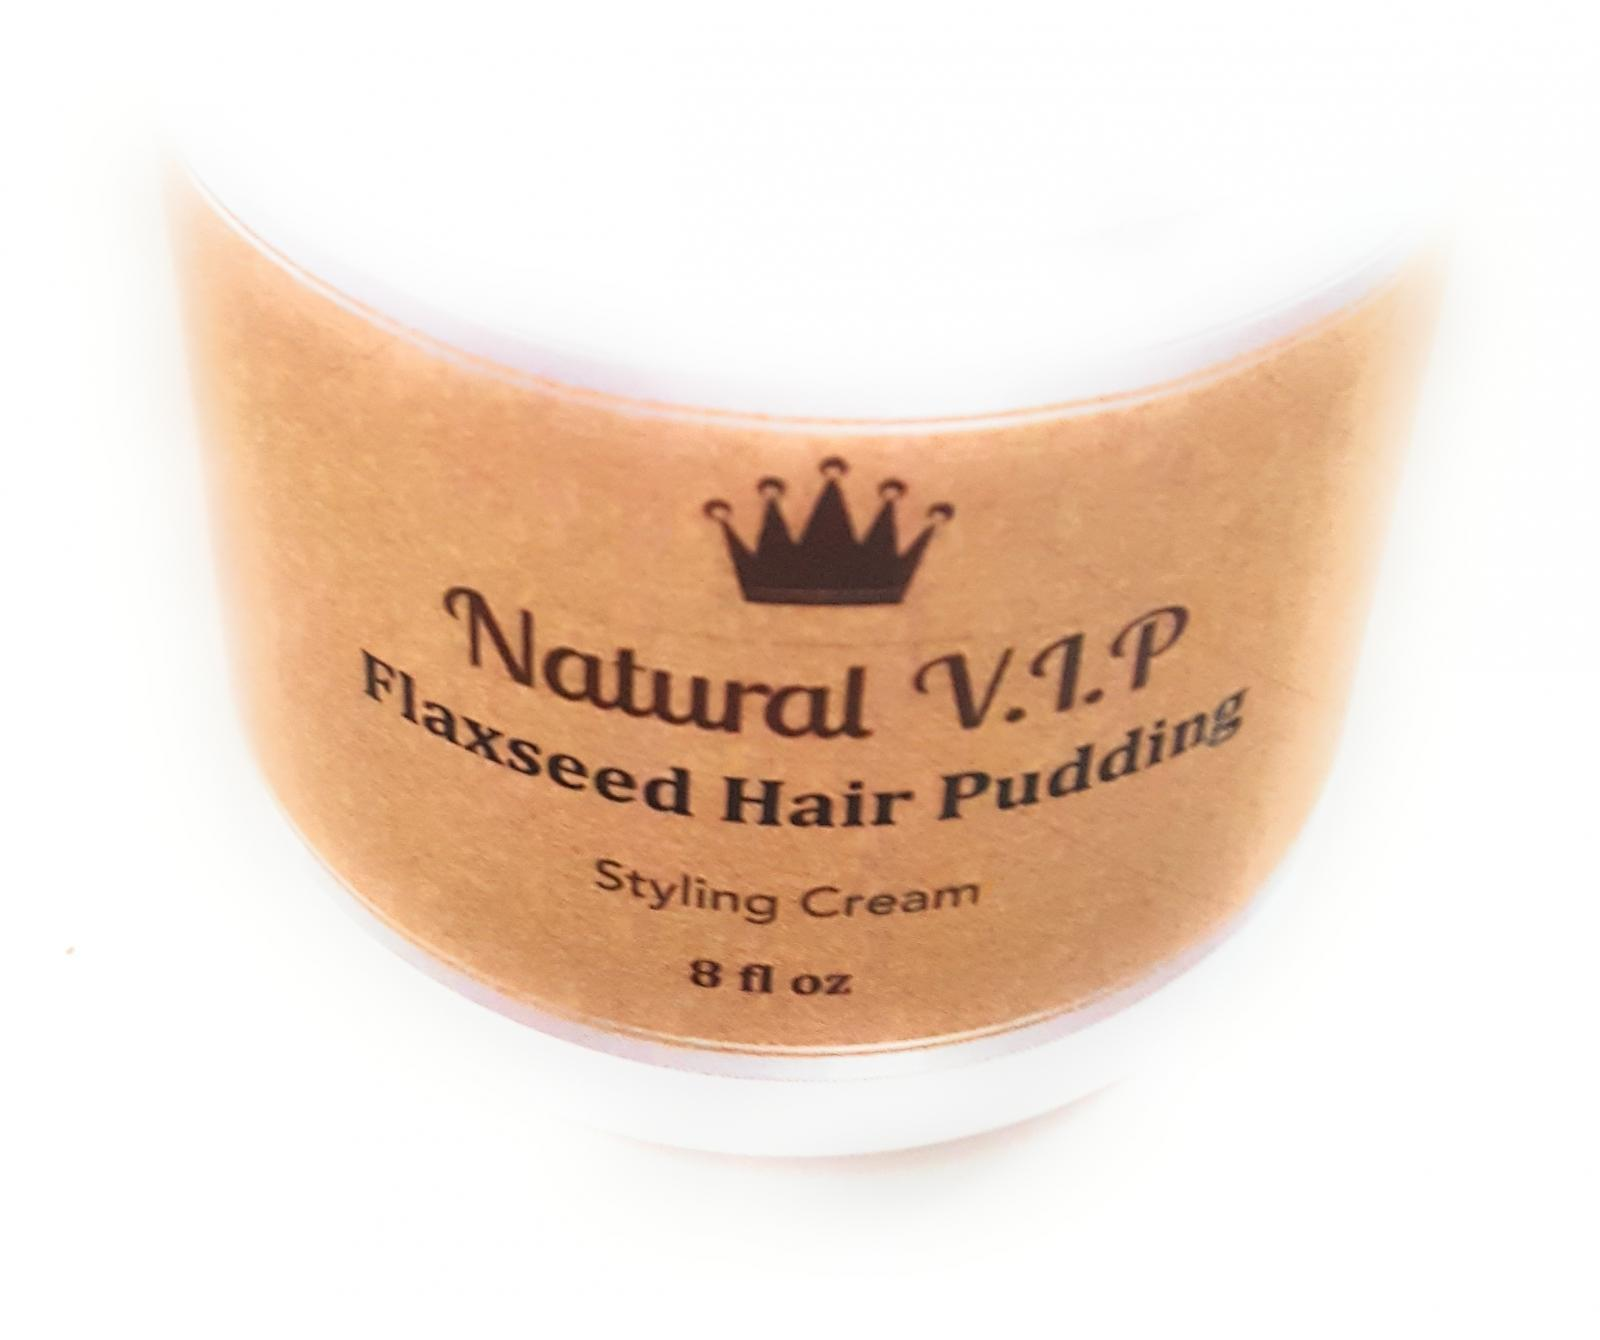 Flaxseed Hair Pudding – Styling Cream for Natural Hair